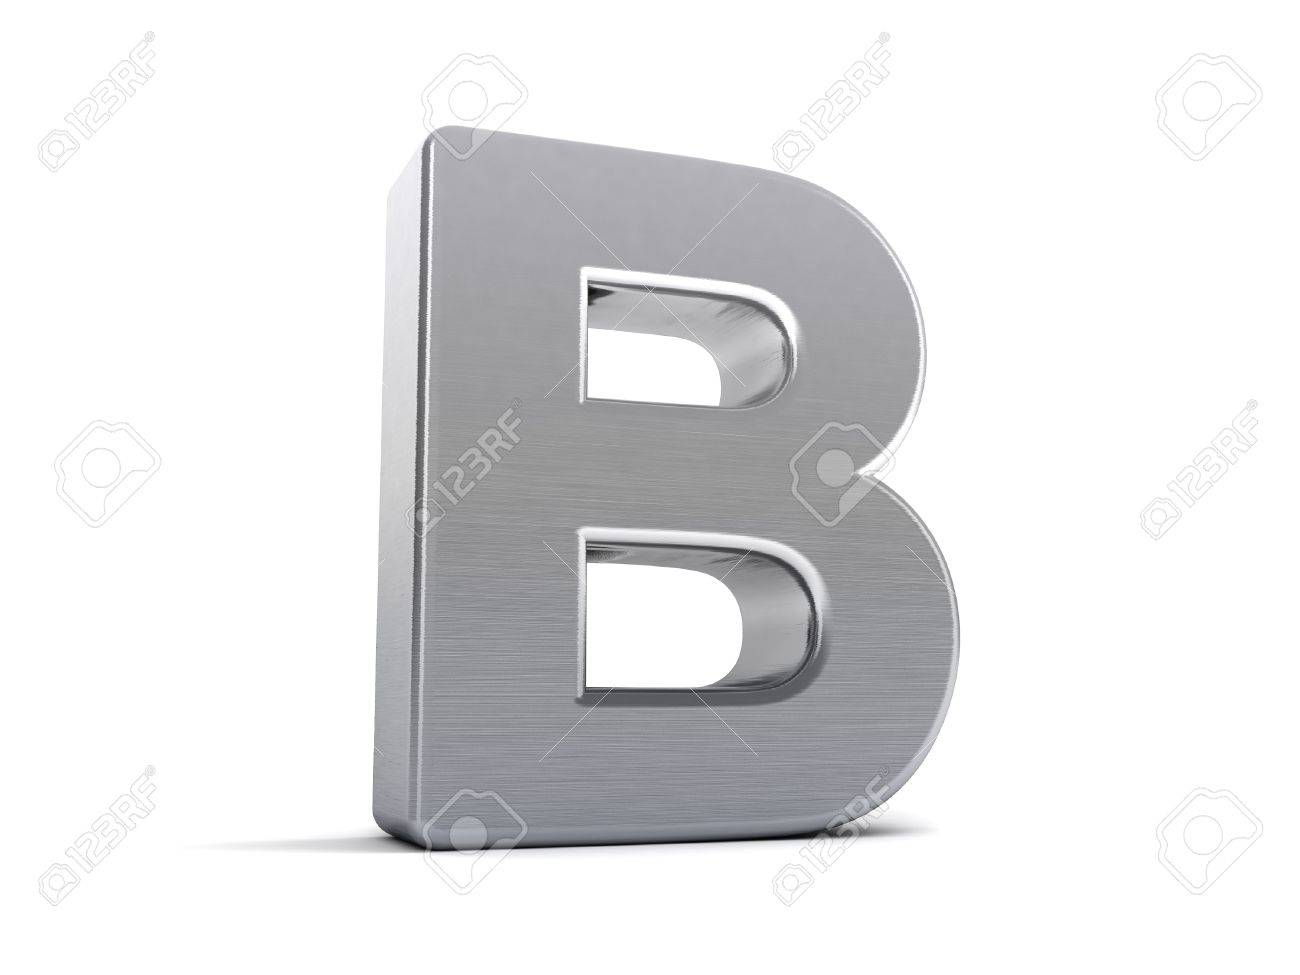 Letter B as a brushed metal 3D object Stock Photo - 8853441